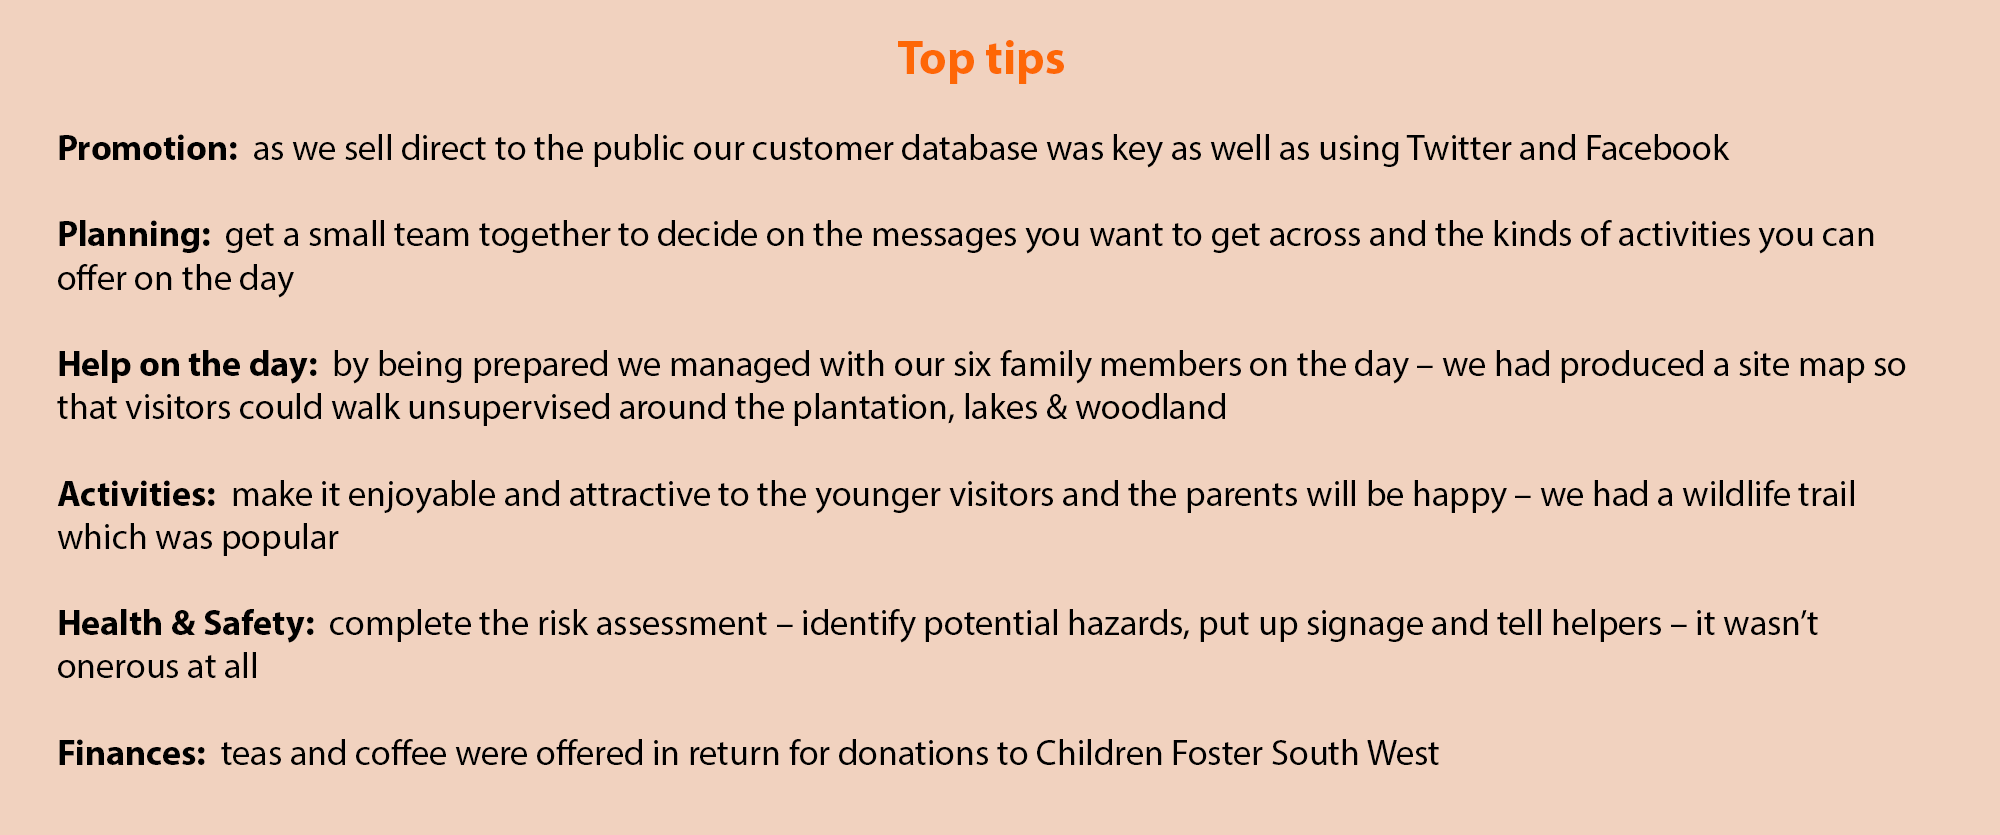 OFS_CASE_STUDY_TOP_TIPS_LANGFORD_LAKES.png#asset:4518